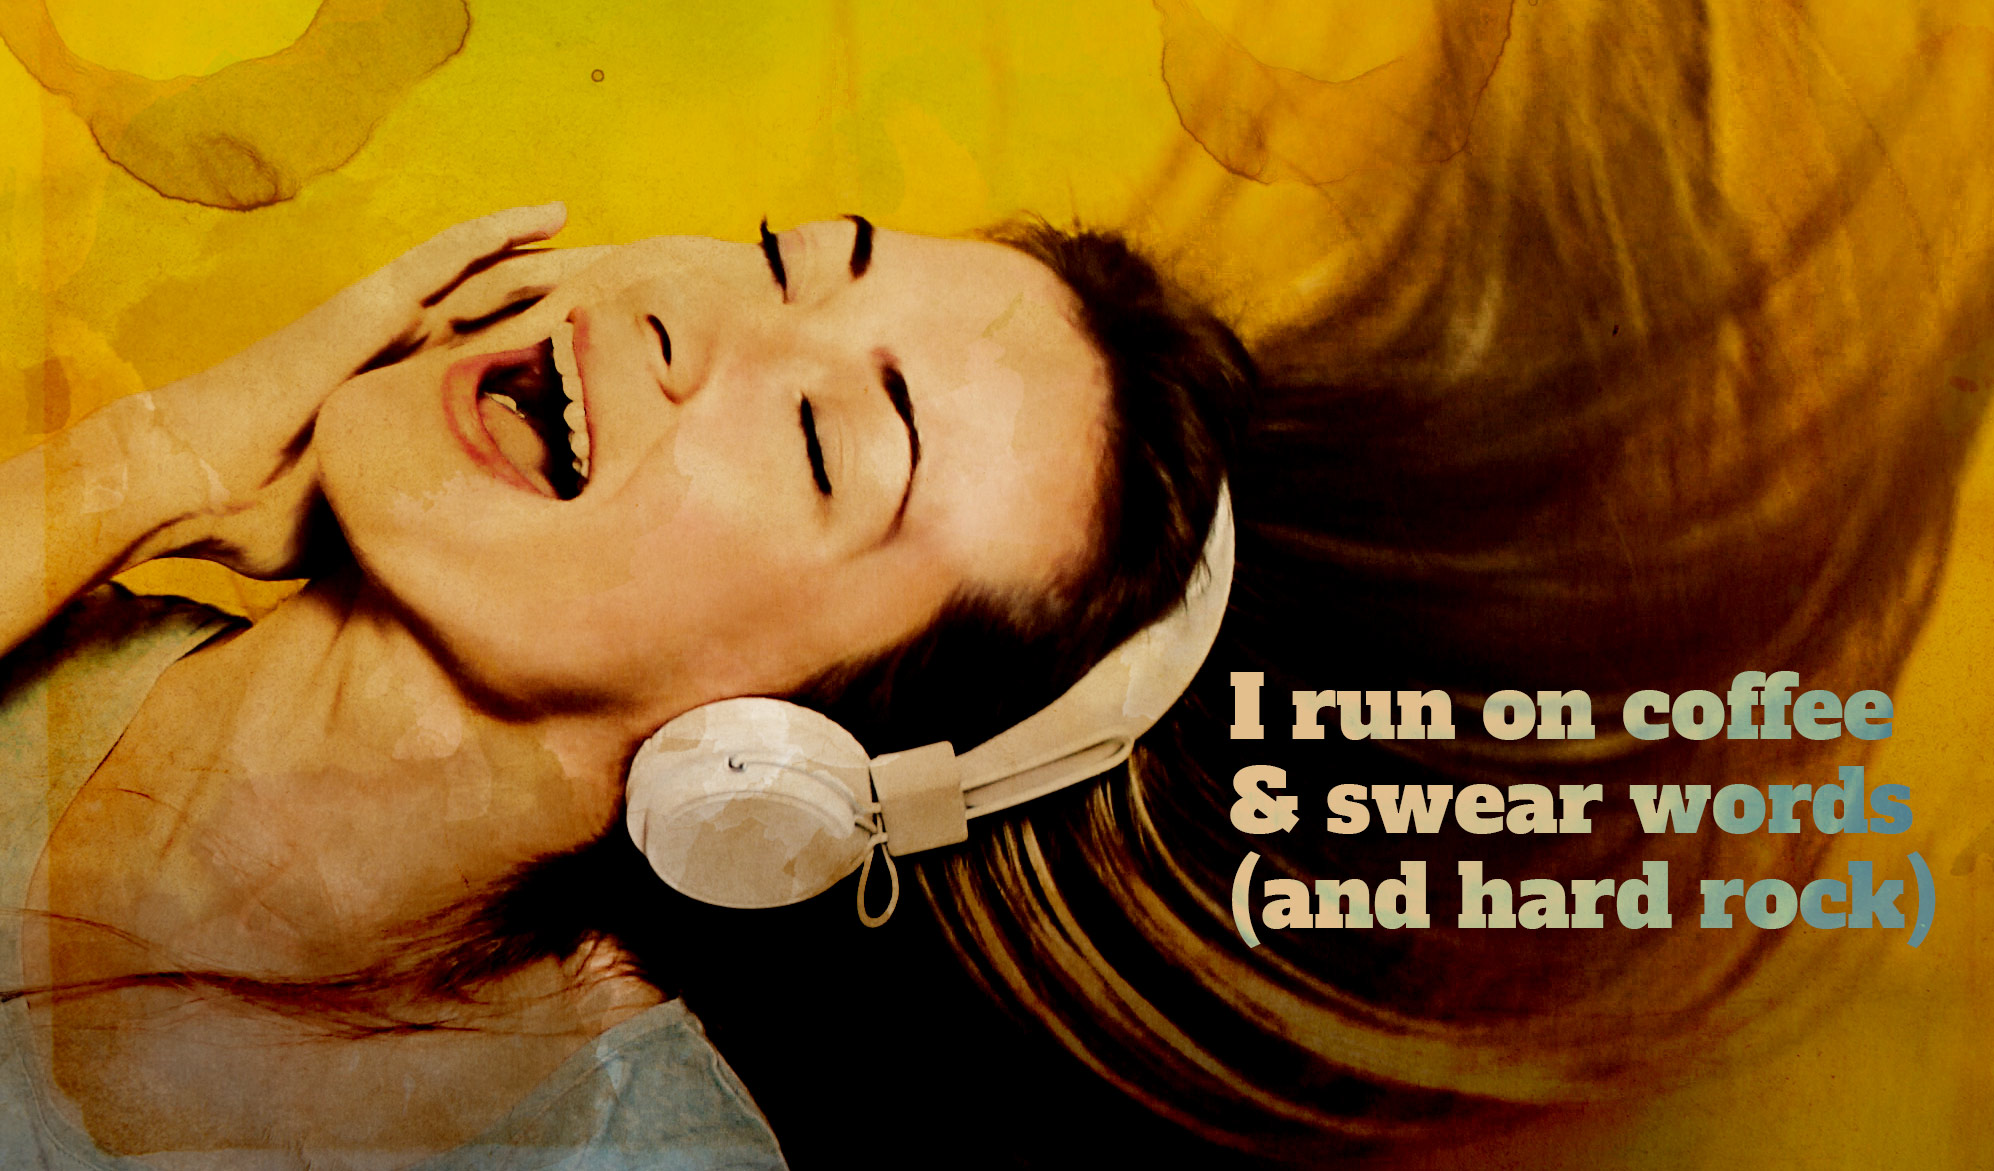 daily inspirational quote image: girl shaking her hair, while listening to music